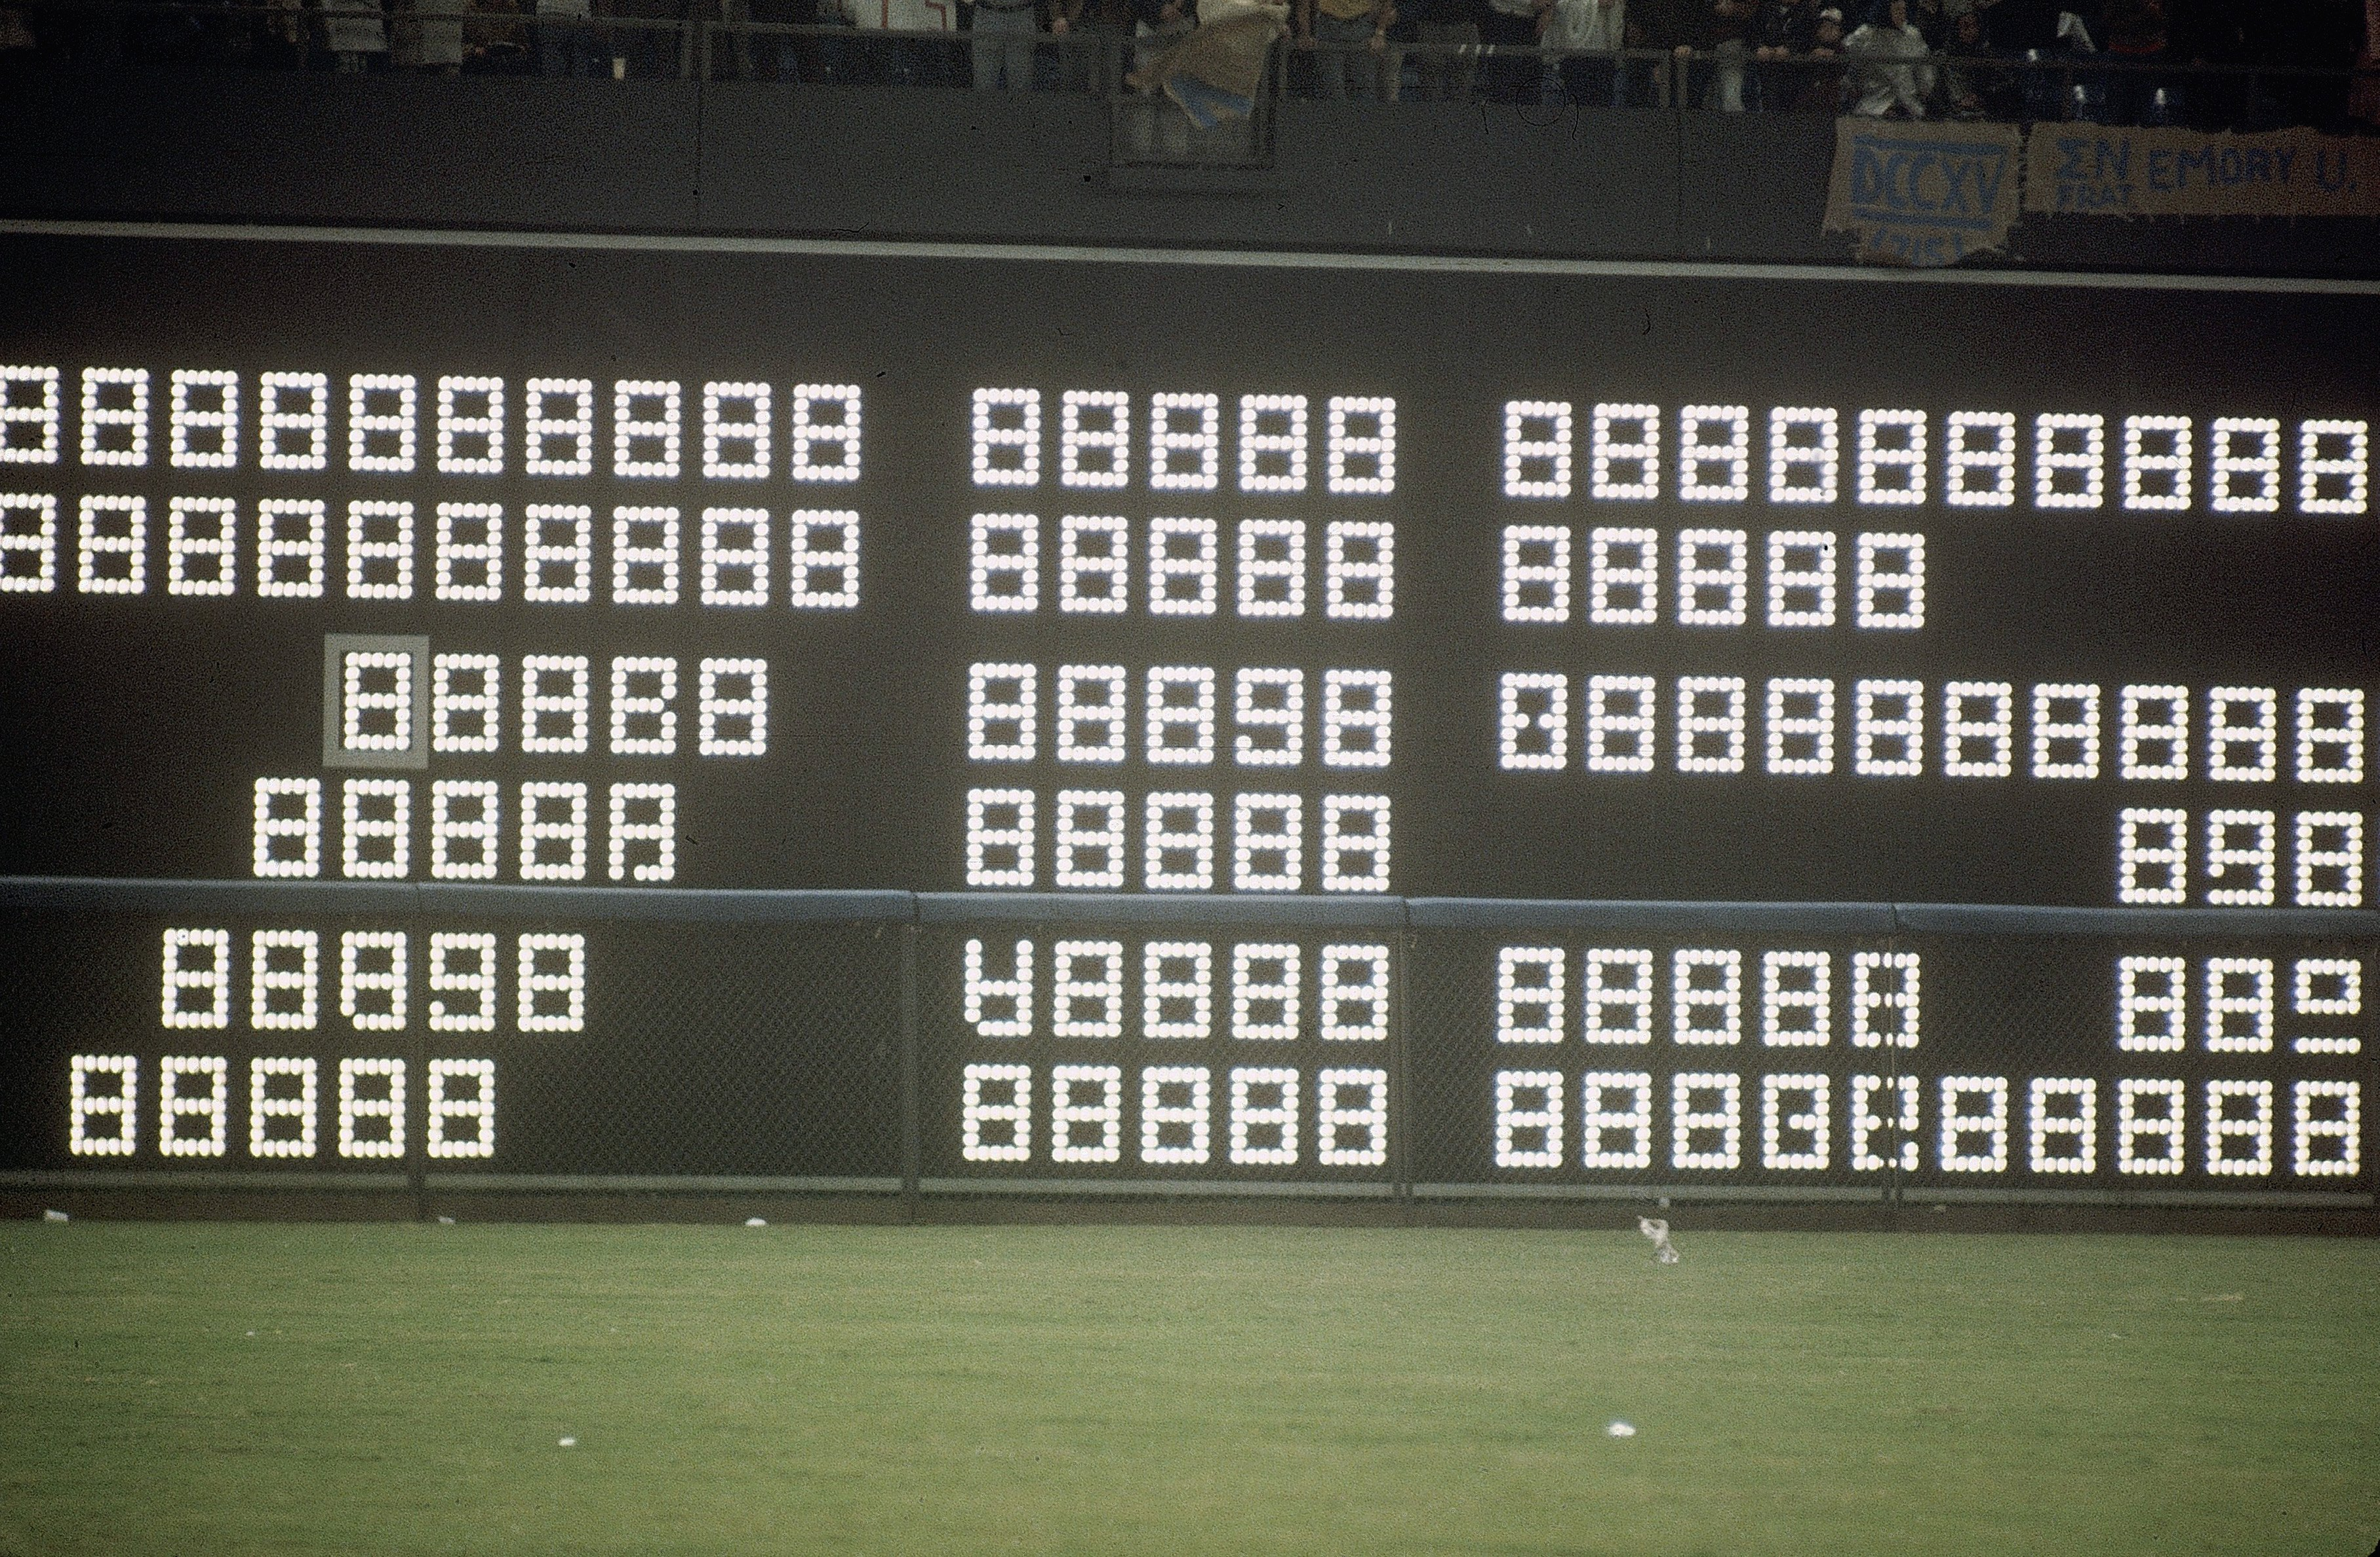 Scoreboard flashes 715 in Atlanta after Hank Aaron of the Braves hits home run #715 to break Babe Ruth's record off Al Downing of the Los Angeles Dodgers on April 8, 1974.